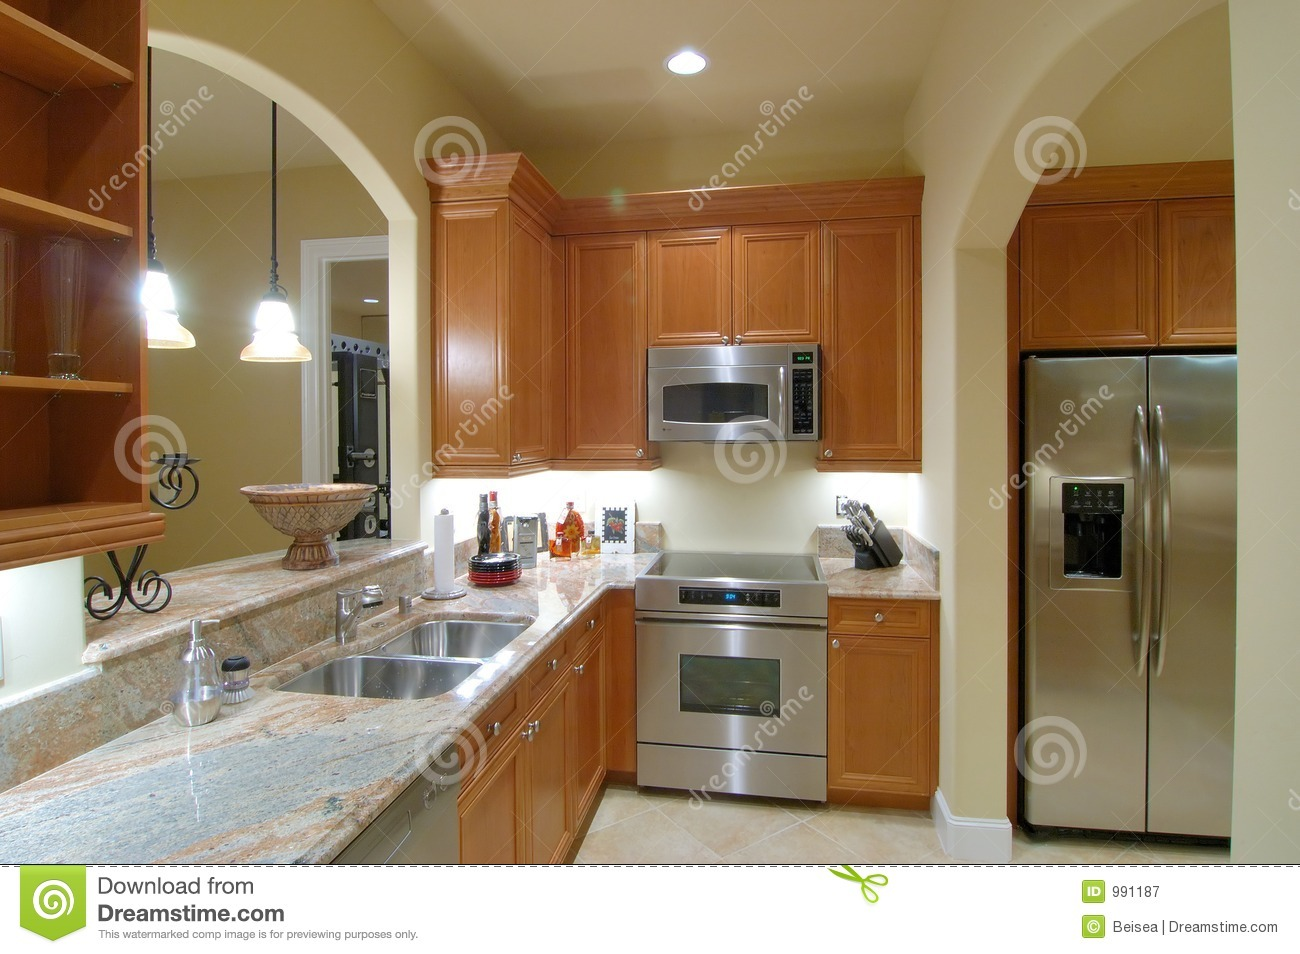 Basement Kitchen Basement Kitchen Royalty Free Stock Photography Image 991187